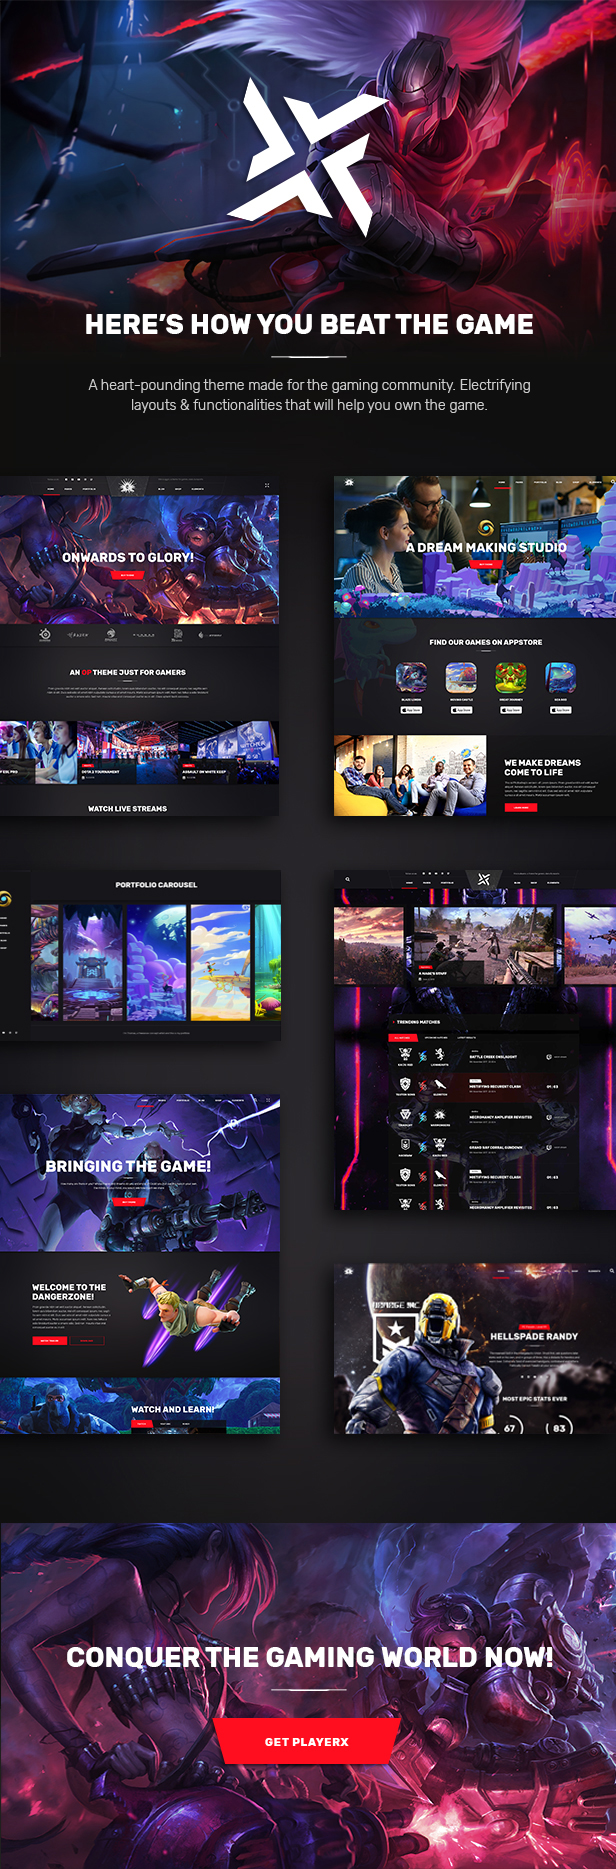 PlayerX – A High-powered Theme for Gaming and eSports (Entertainment)